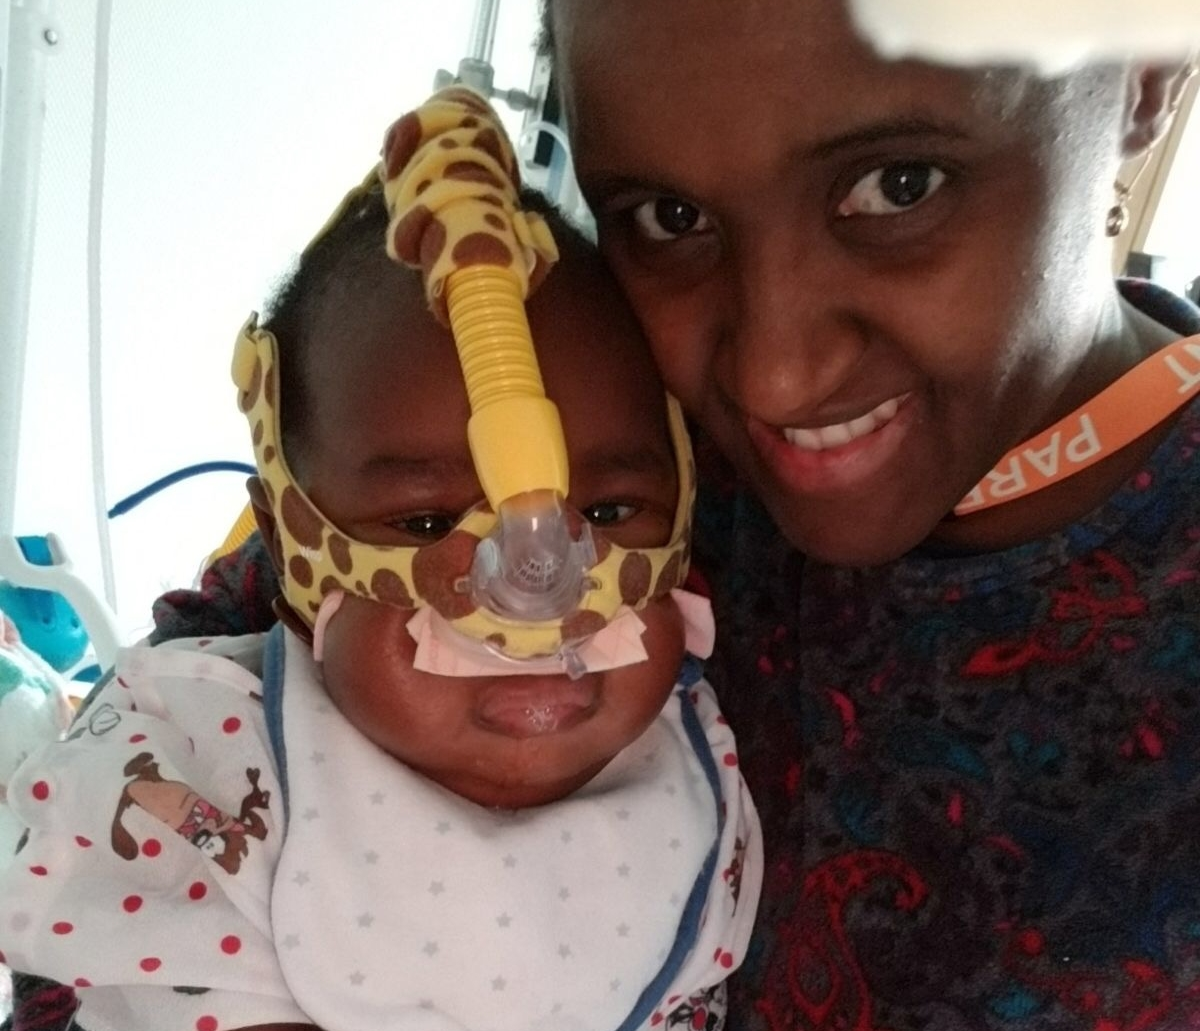 Insight from a diaspora mum coping with son's rare neuromuscularcondition, appeals for support